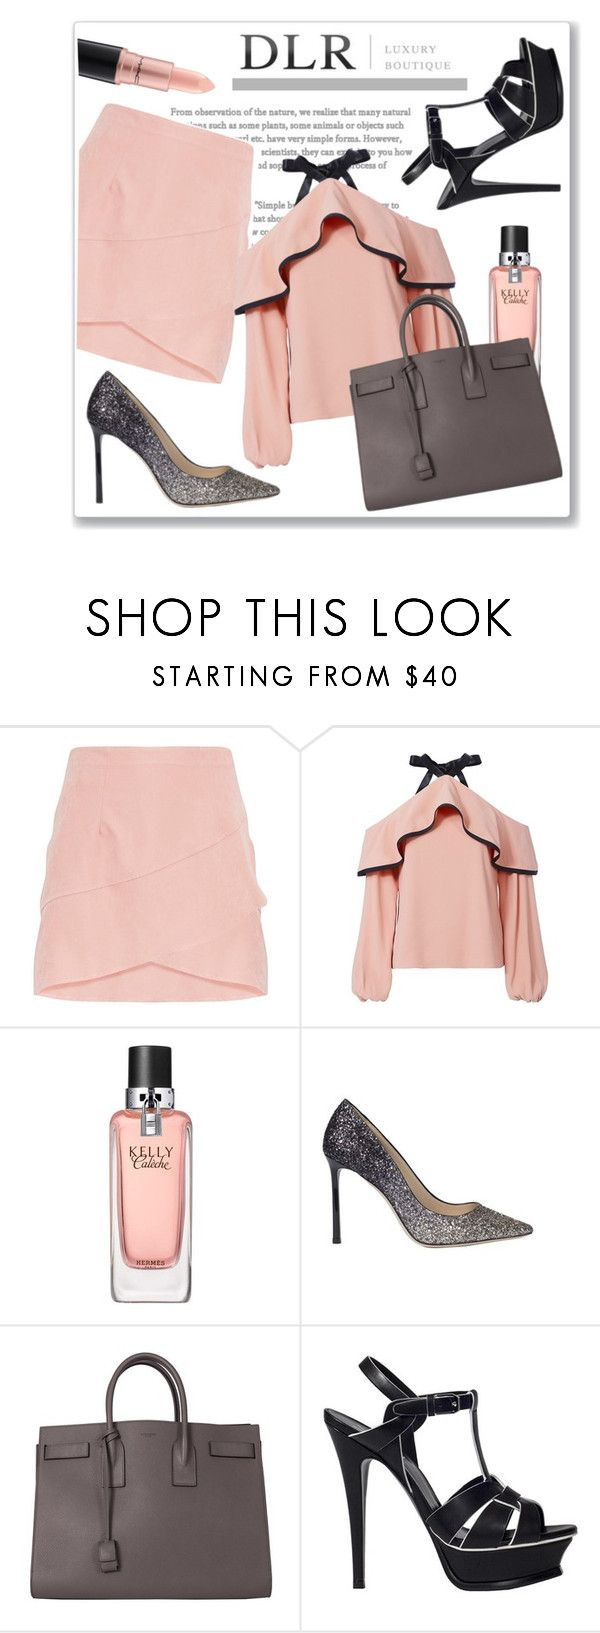 """""""DLRBOUTIQUE.COM"""" by ruza-b-s ❤ liked on Polyvore featuring Alexis, Hermès, Jimmy Choo, Yves Saint Laurent and MAC Cosmetics"""